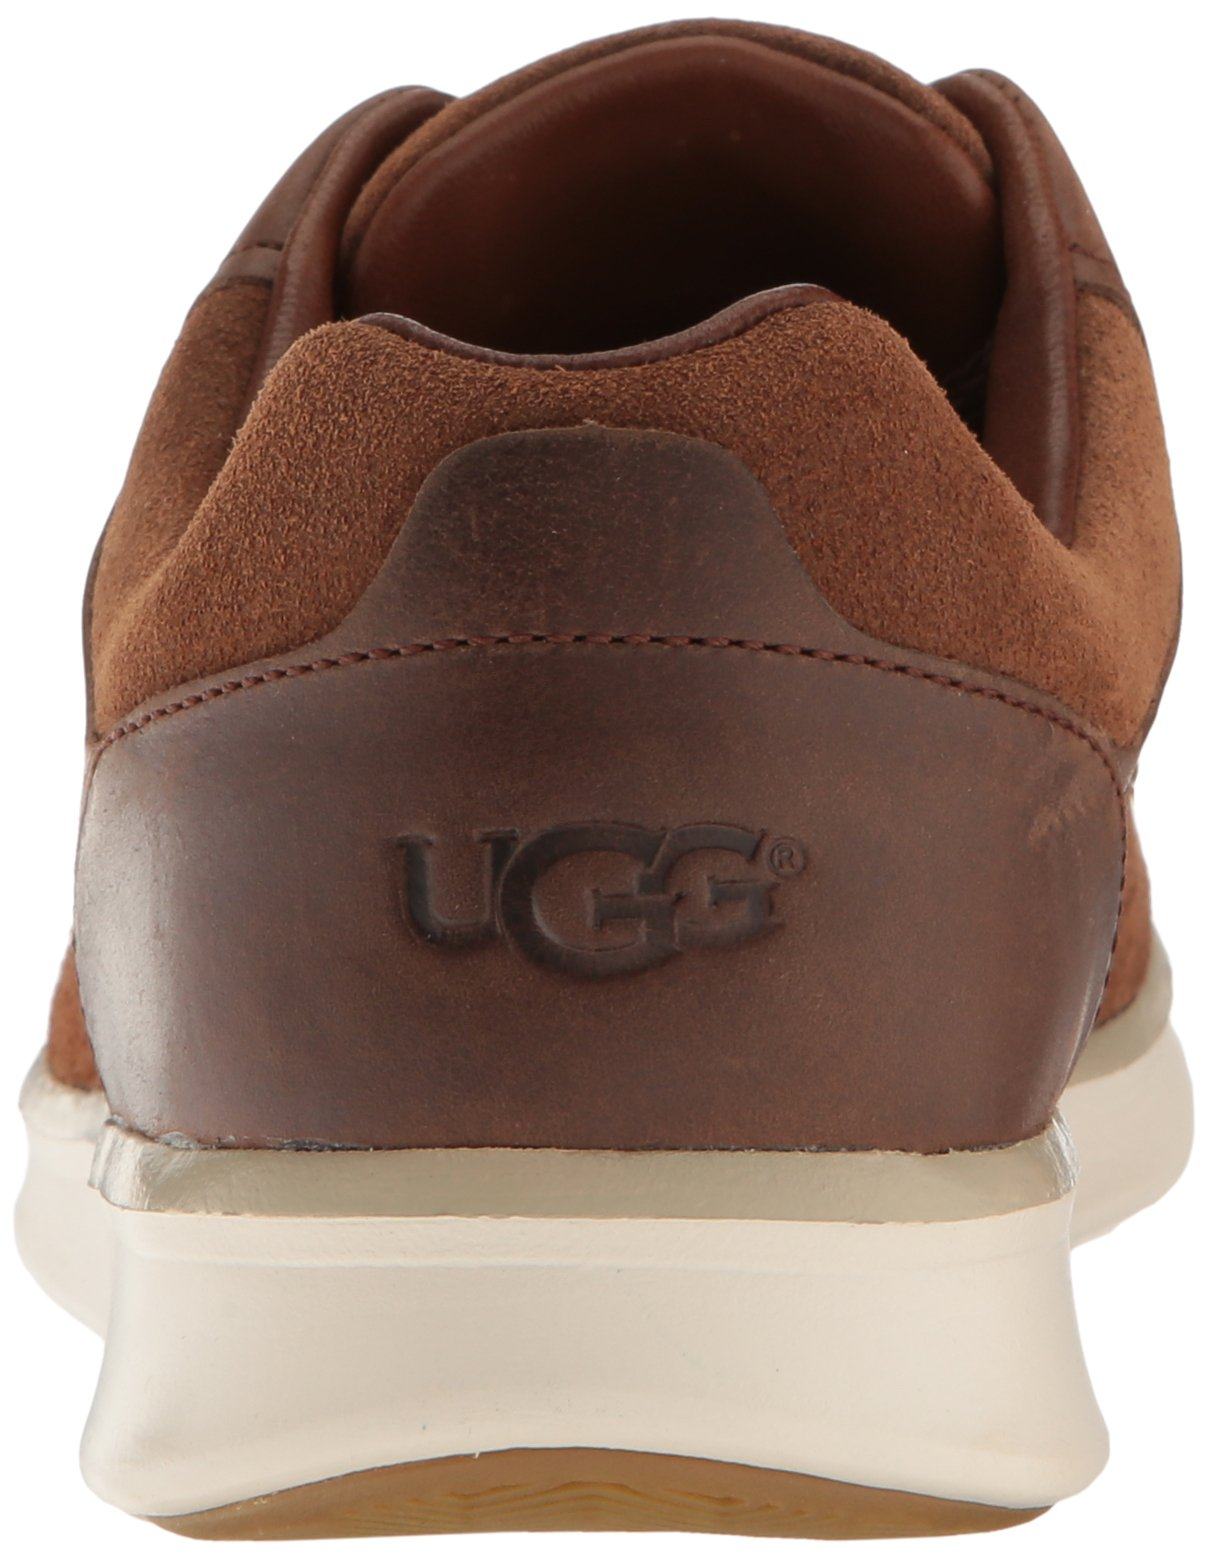 UGG Men's Hepner Fashion Sneaker Chestnut 11.5 M US by UGG (Image #2)